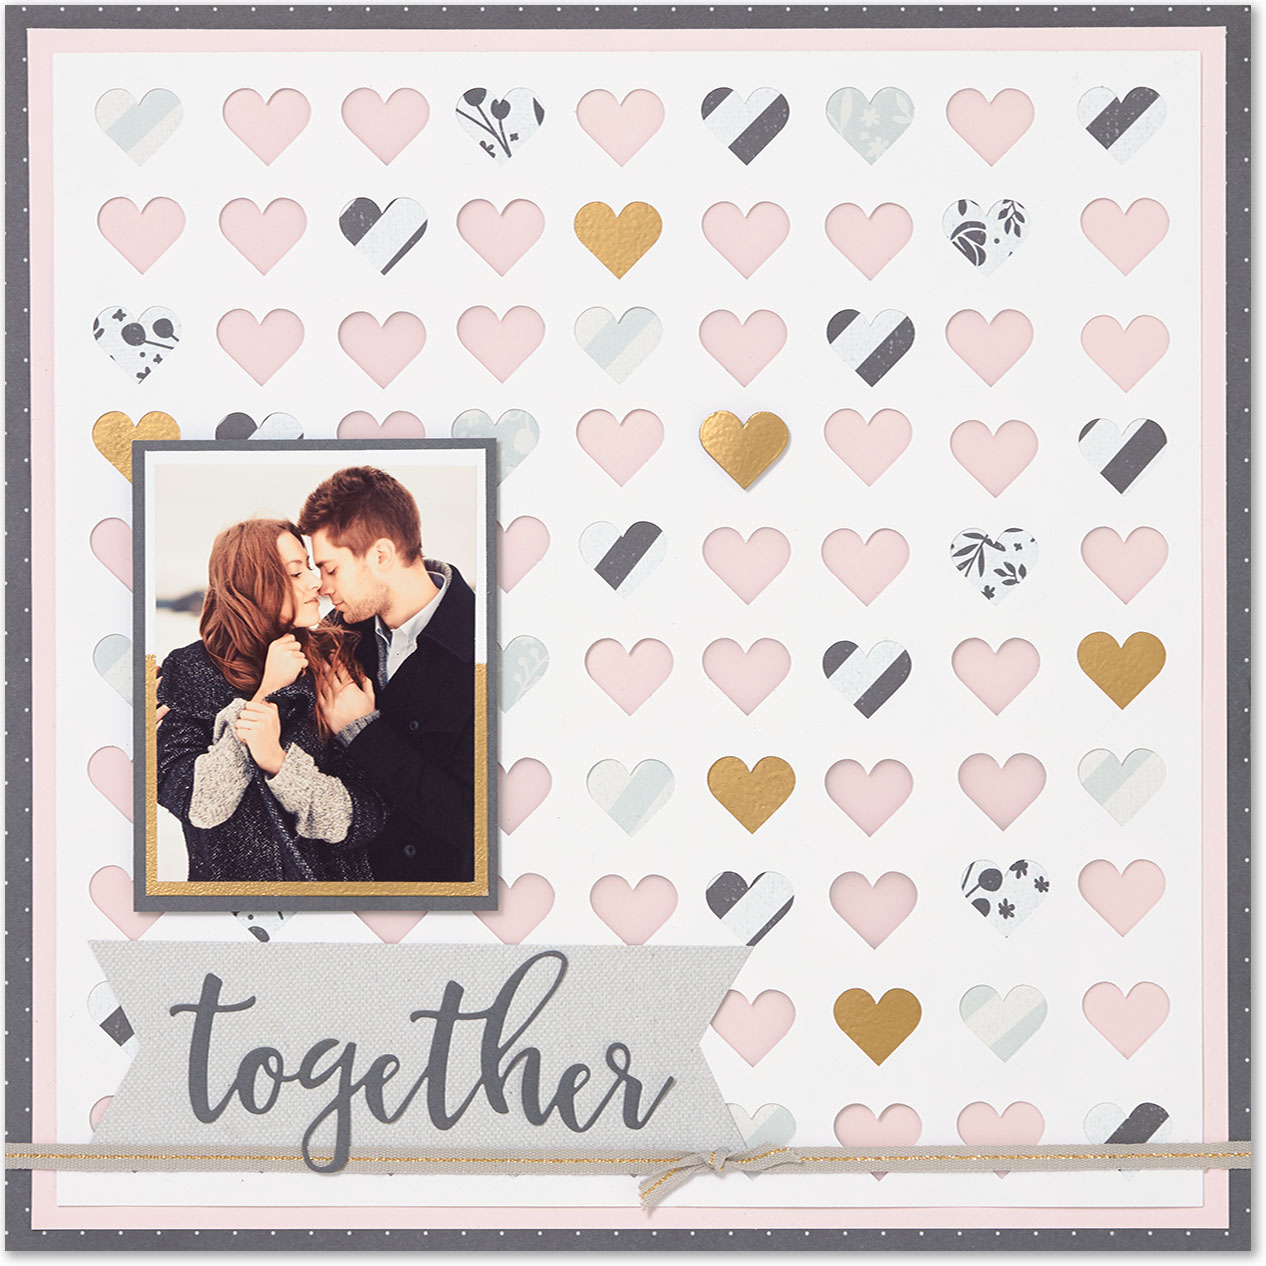 Use your Cricut® machine to create unique backgrounds for you scrapbook pages! #ctmh #closetomyheart #cricut #tutorial #howto #easy #scrapbooking #ideas